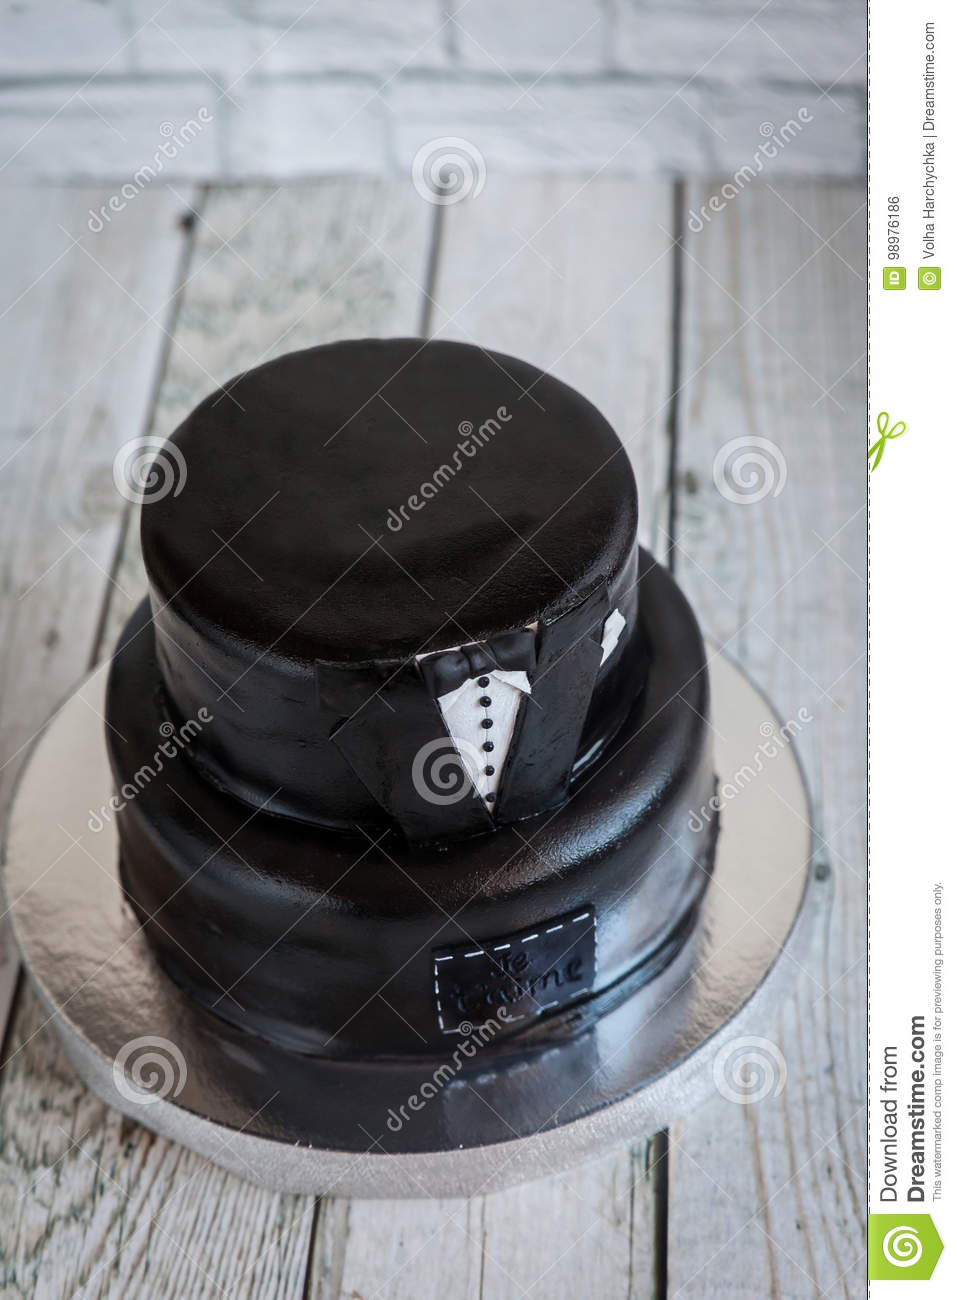 White And Black Tuxedo Wedding Or Mans Birthday Cake With The Text Je Taime